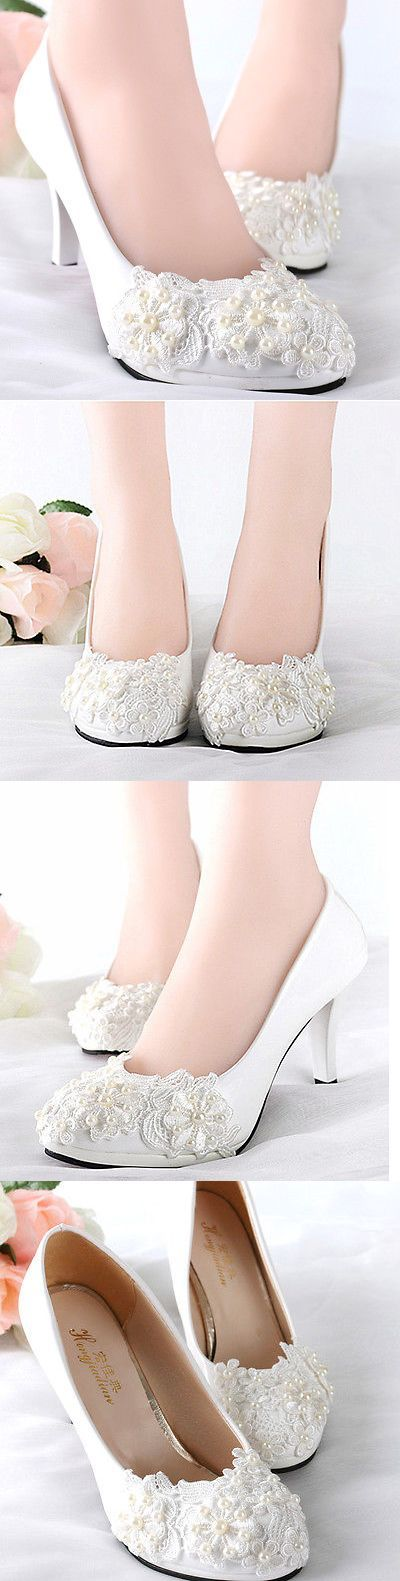 Wedding Shoes And Bridal Shoes: White Lace Pearls Wedding Shoes Bridal Flats Low High Heels Pumps Size 5-12 BUY IT NOW ONLY: $35.99